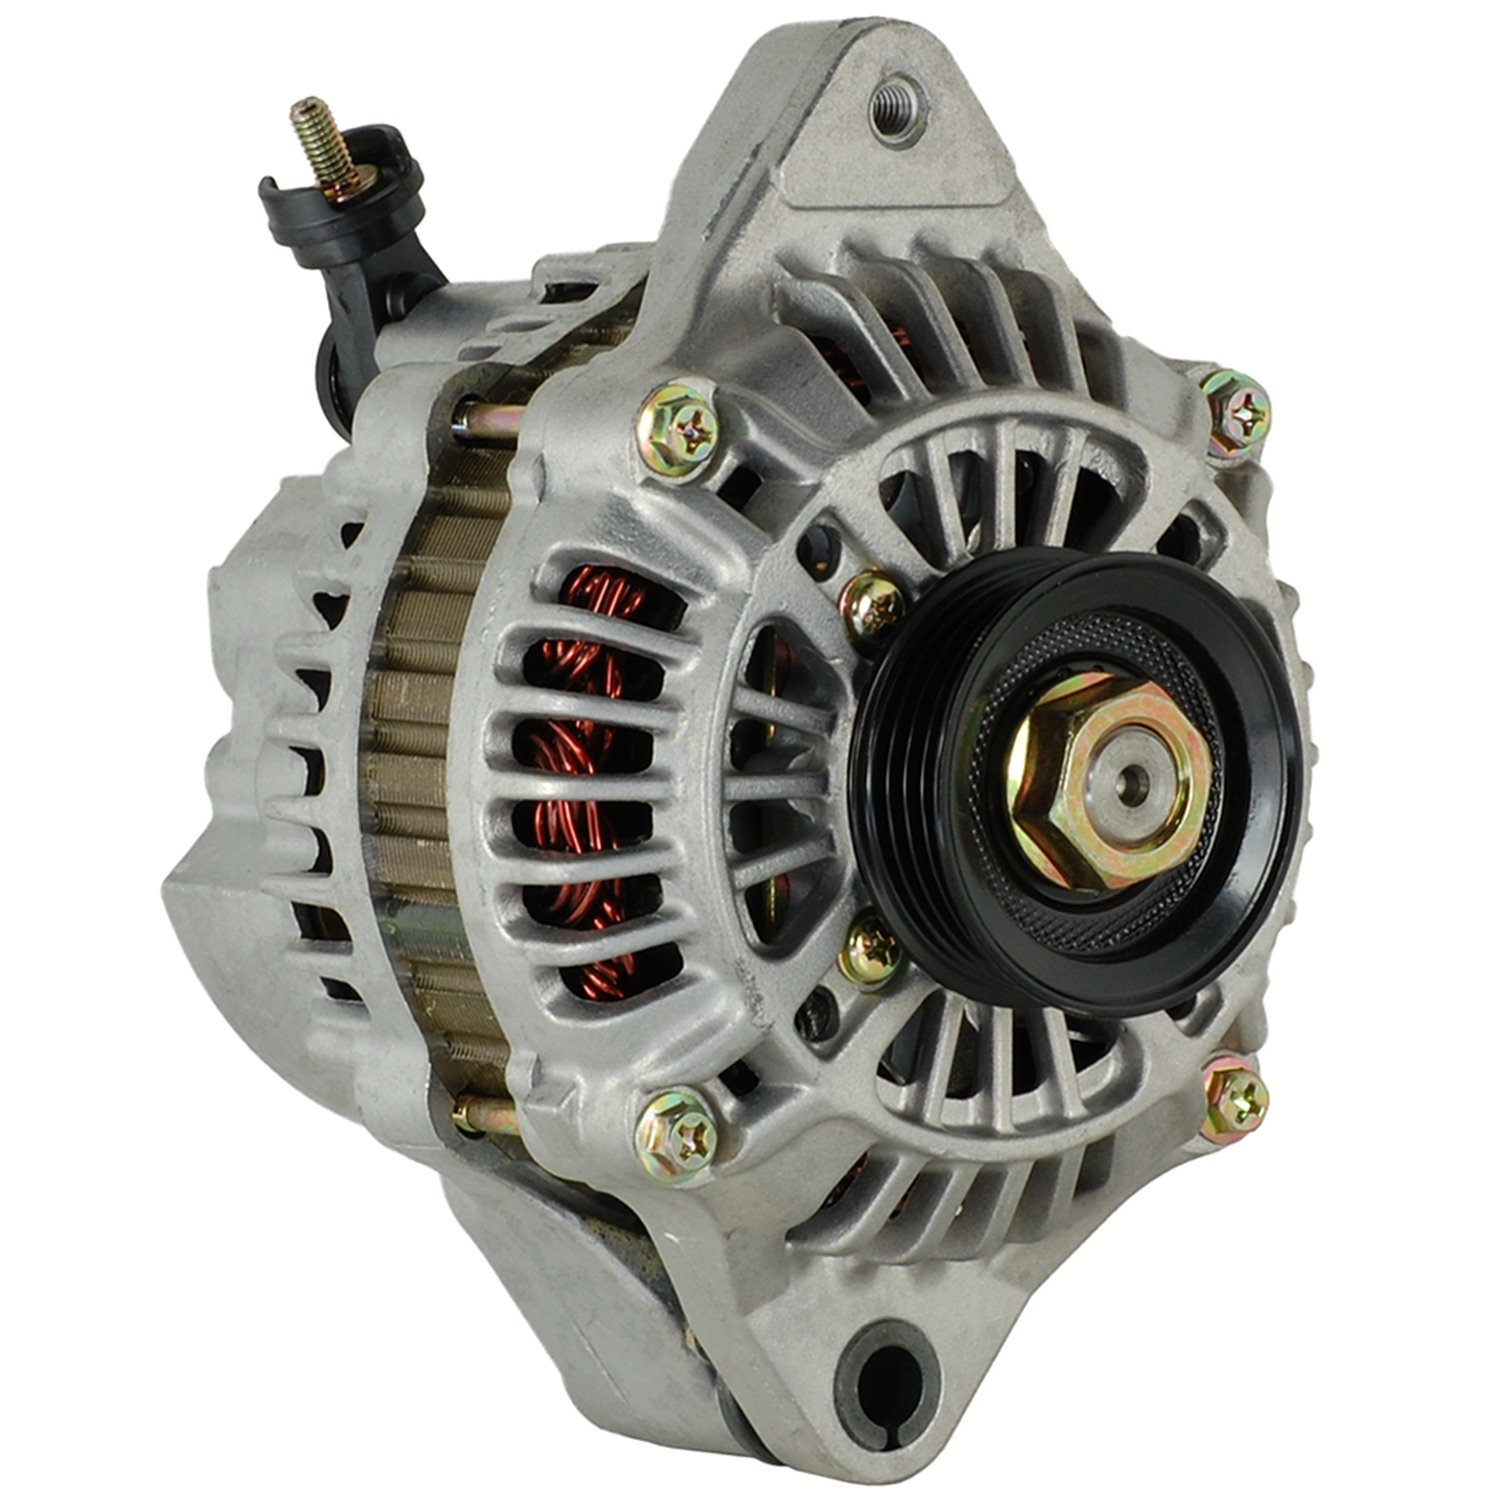 2003 buick rendezvous alternator wiring diagram buick